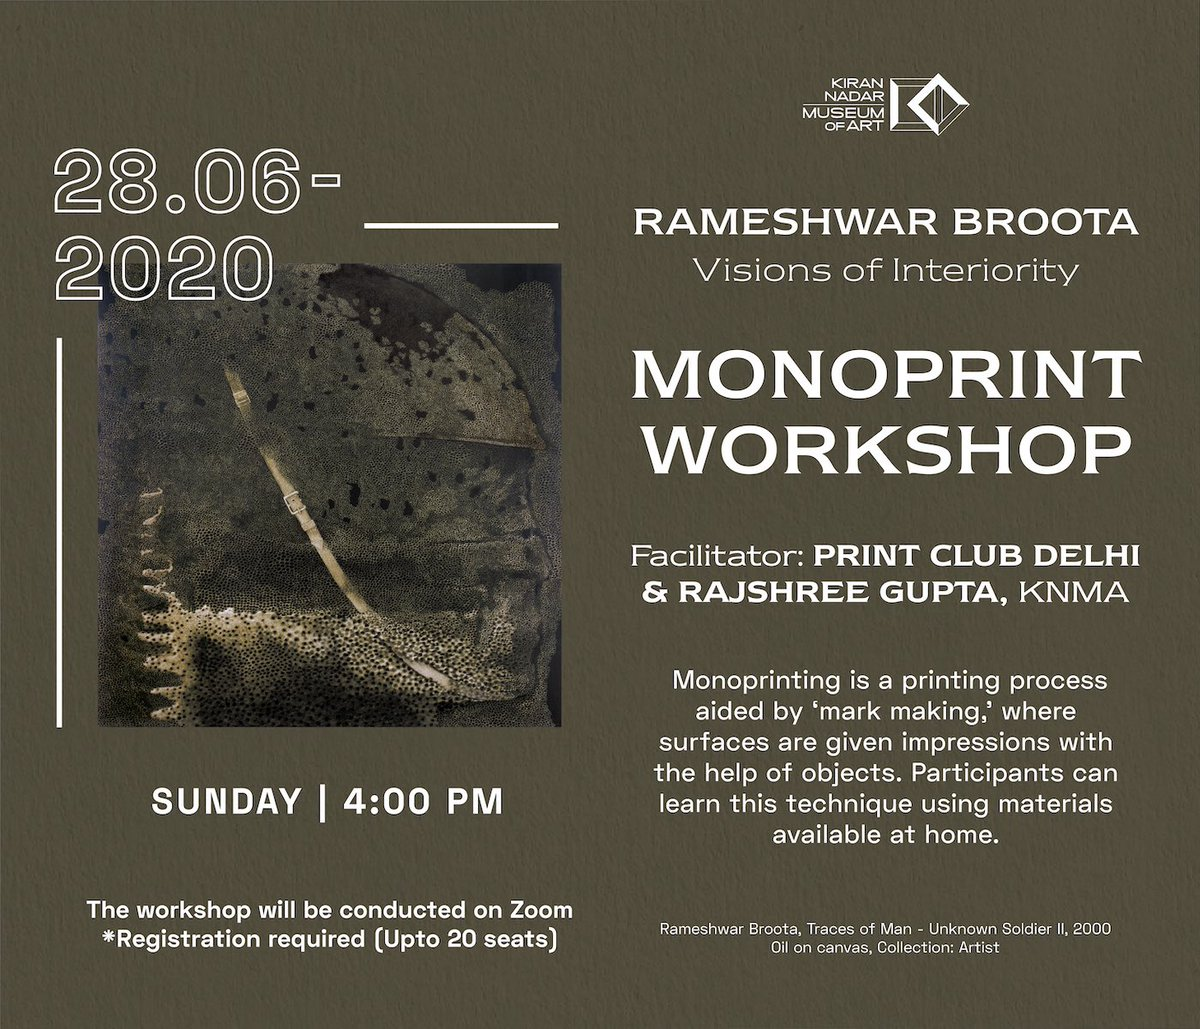 Monoprint Workshop Join us for a workshop on monoprinting using materials available at home.